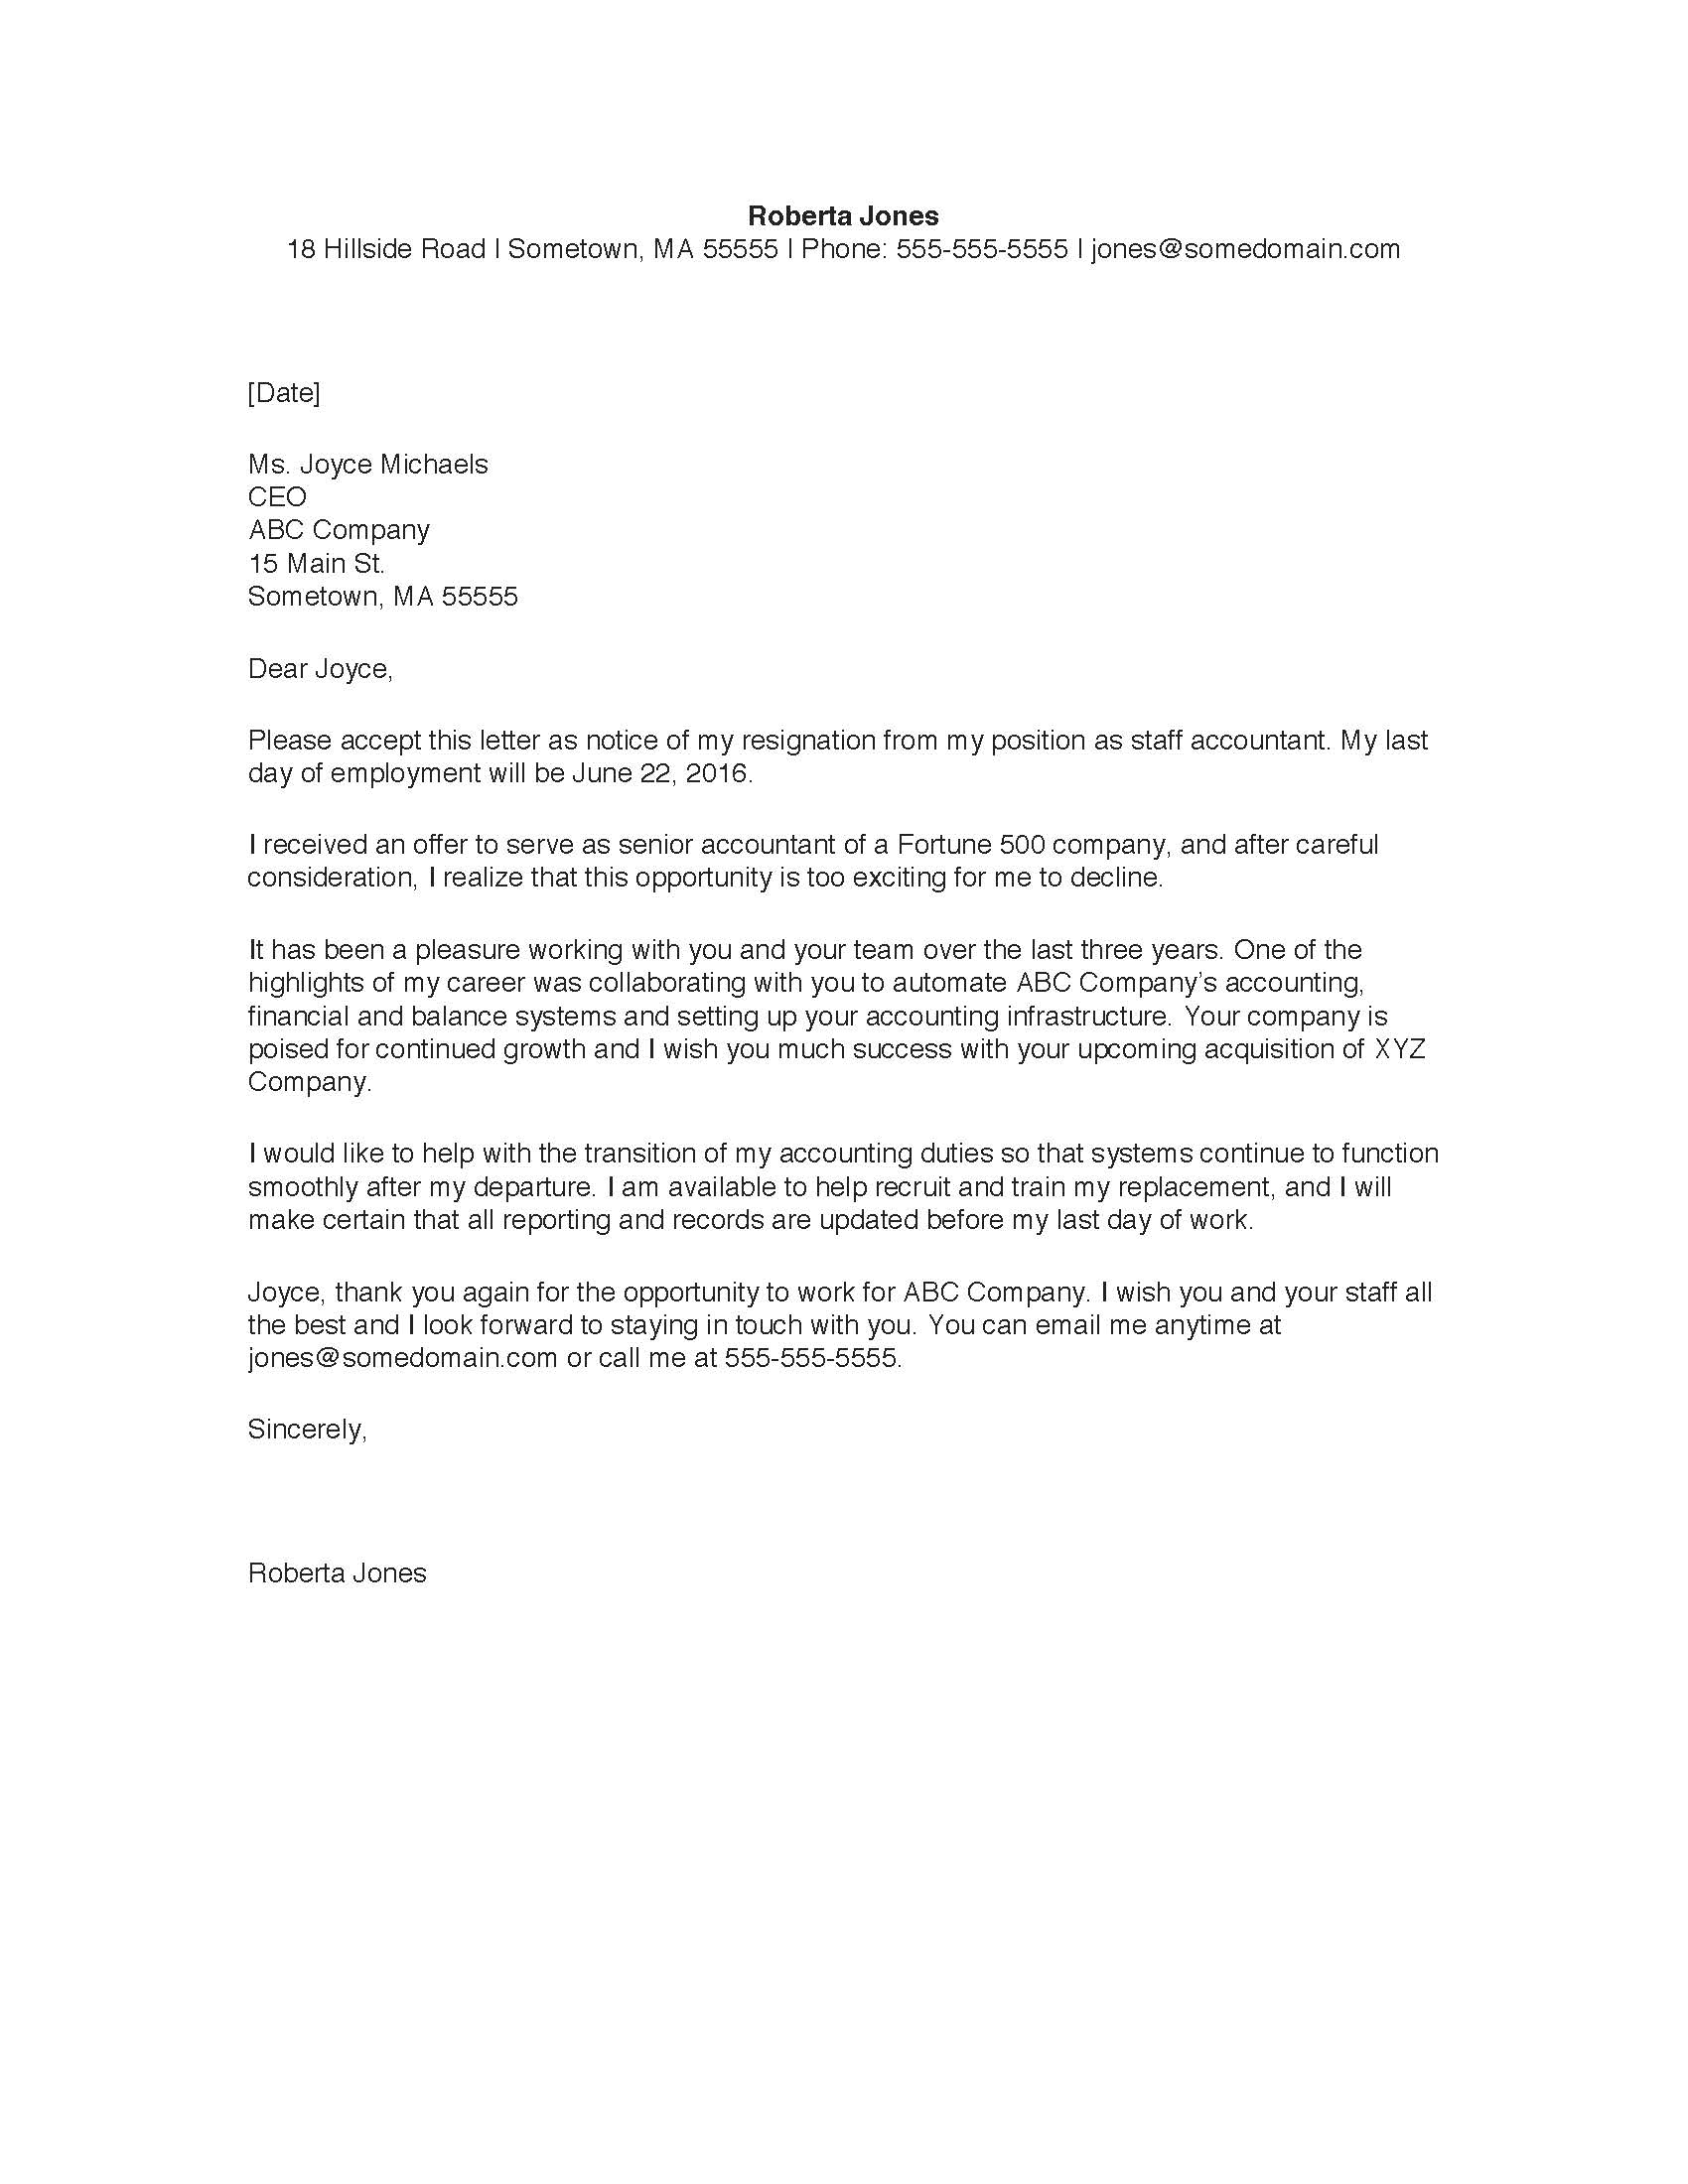 Sample resignation letter monster sample resignation letter madrichimfo Choice Image